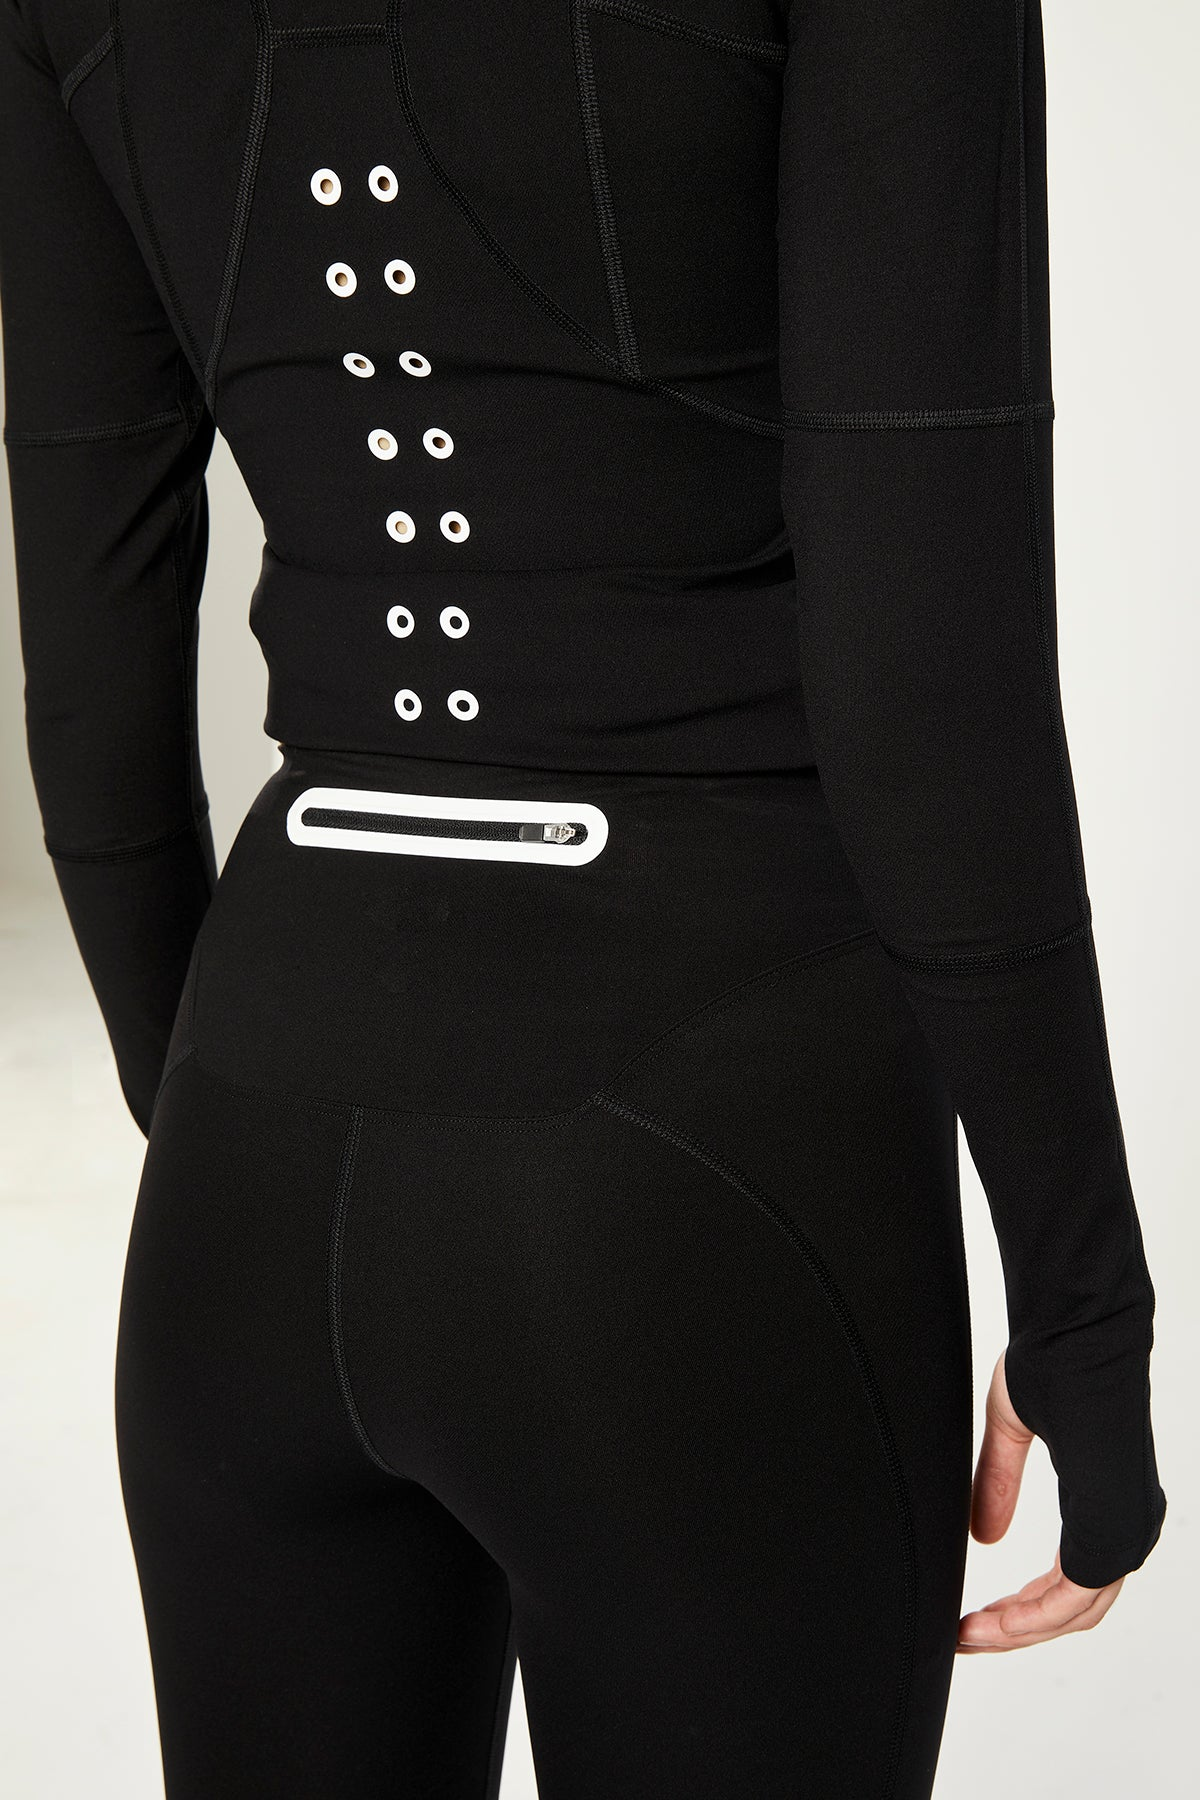 CROSS-OVER BLACK ULTRA TECHNOLOGIC HIGH WAISTED LEGGINGS